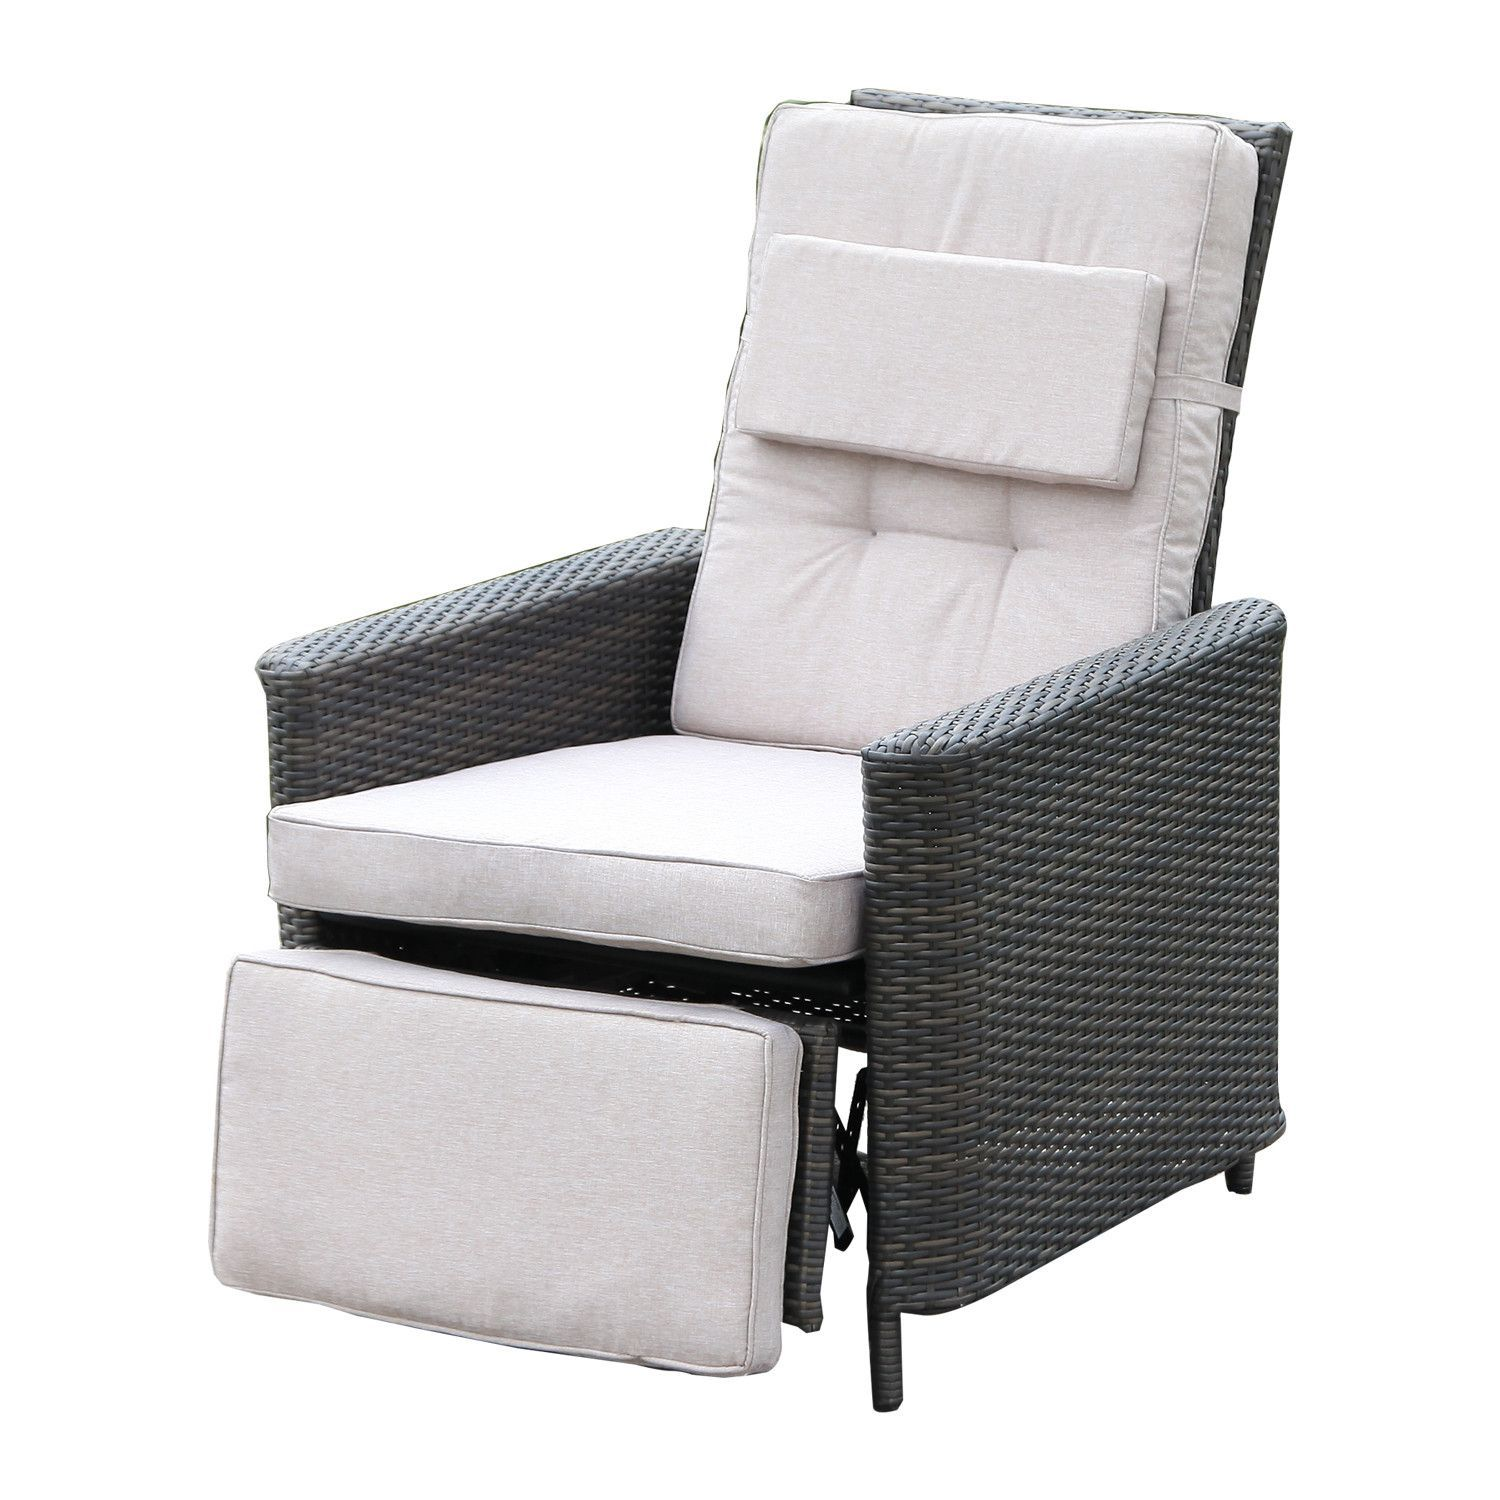 Awesome Wicker Rattan Outdoor Reclining Chair Products Patio Creativecarmelina Interior Chair Design Creativecarmelinacom